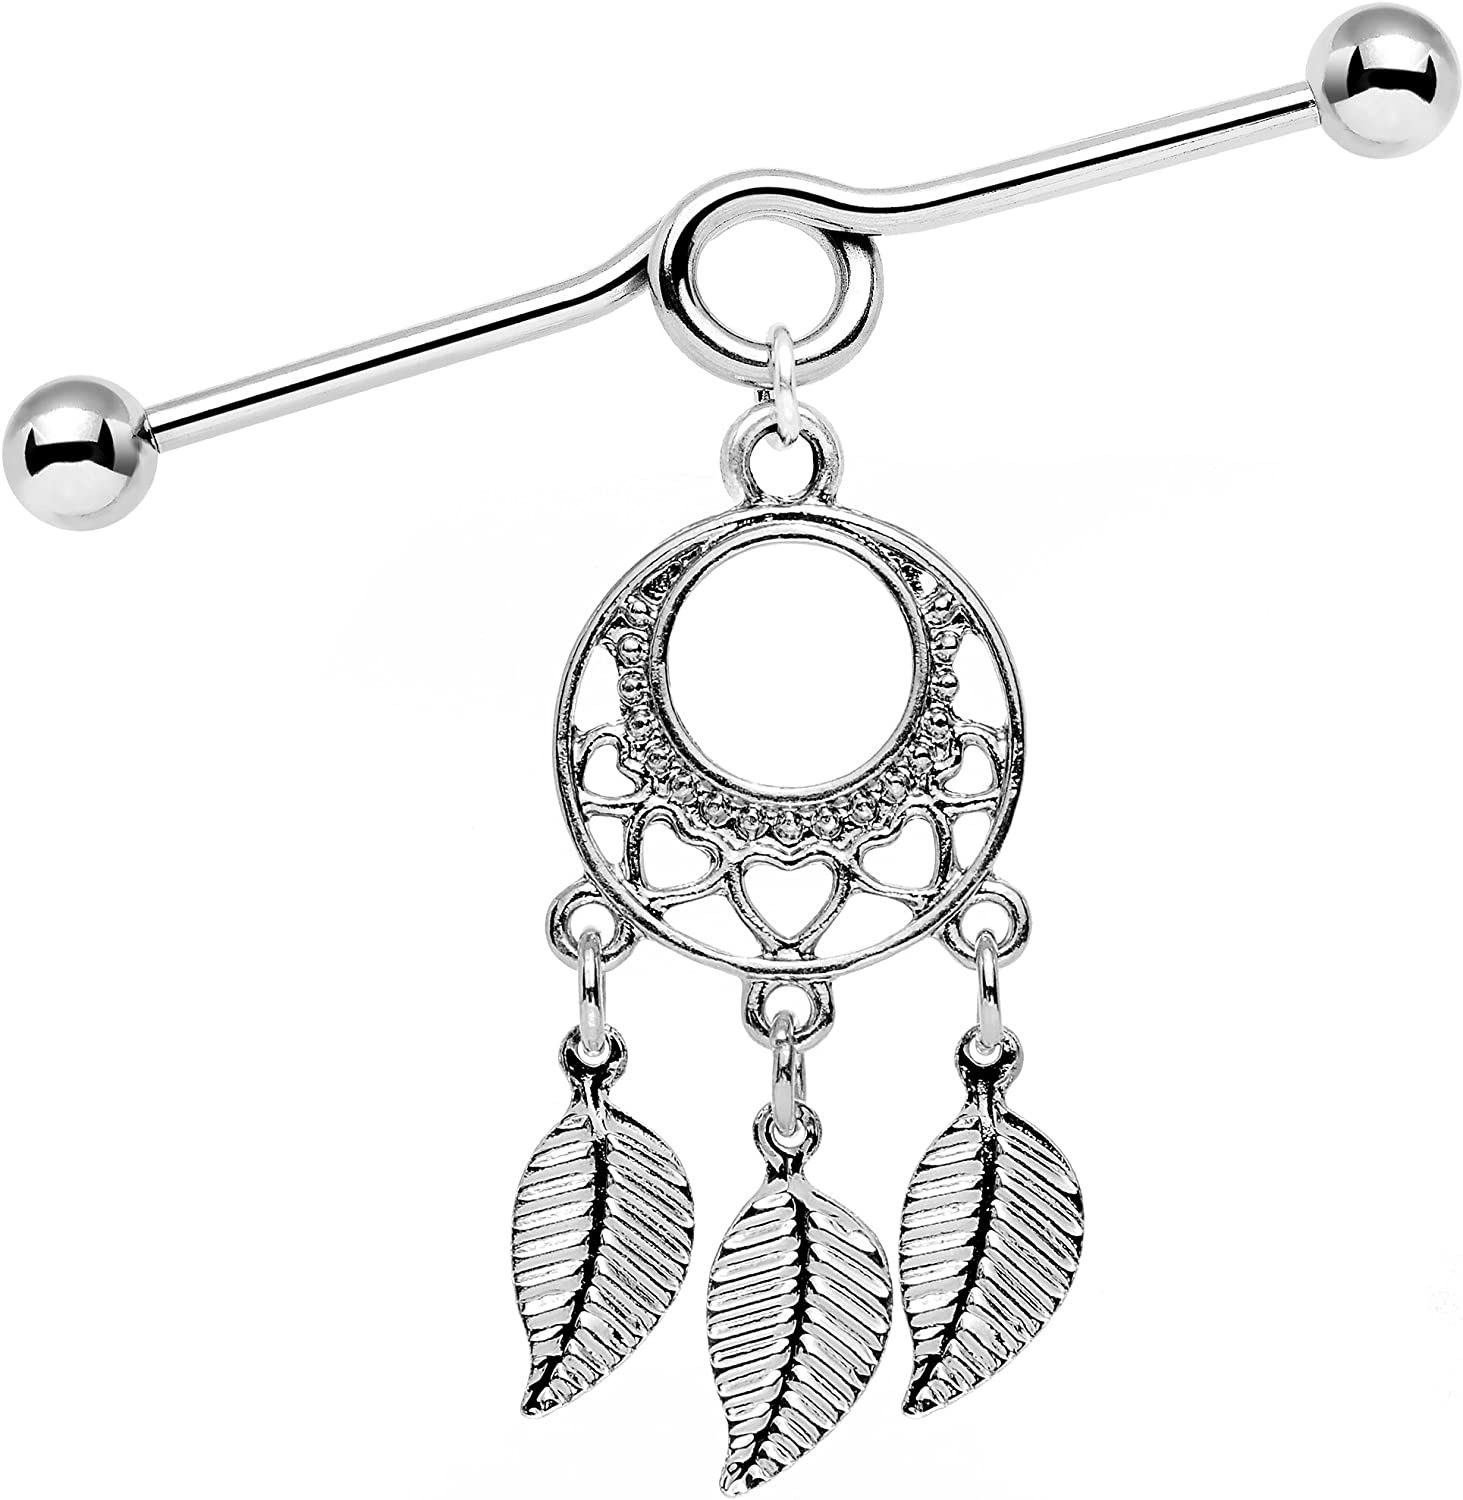 Body Candy Stainless Steel Natural Love Dreamcatcher Dangle Helix Earring Industrial Barbell 14 Gauge 39mm